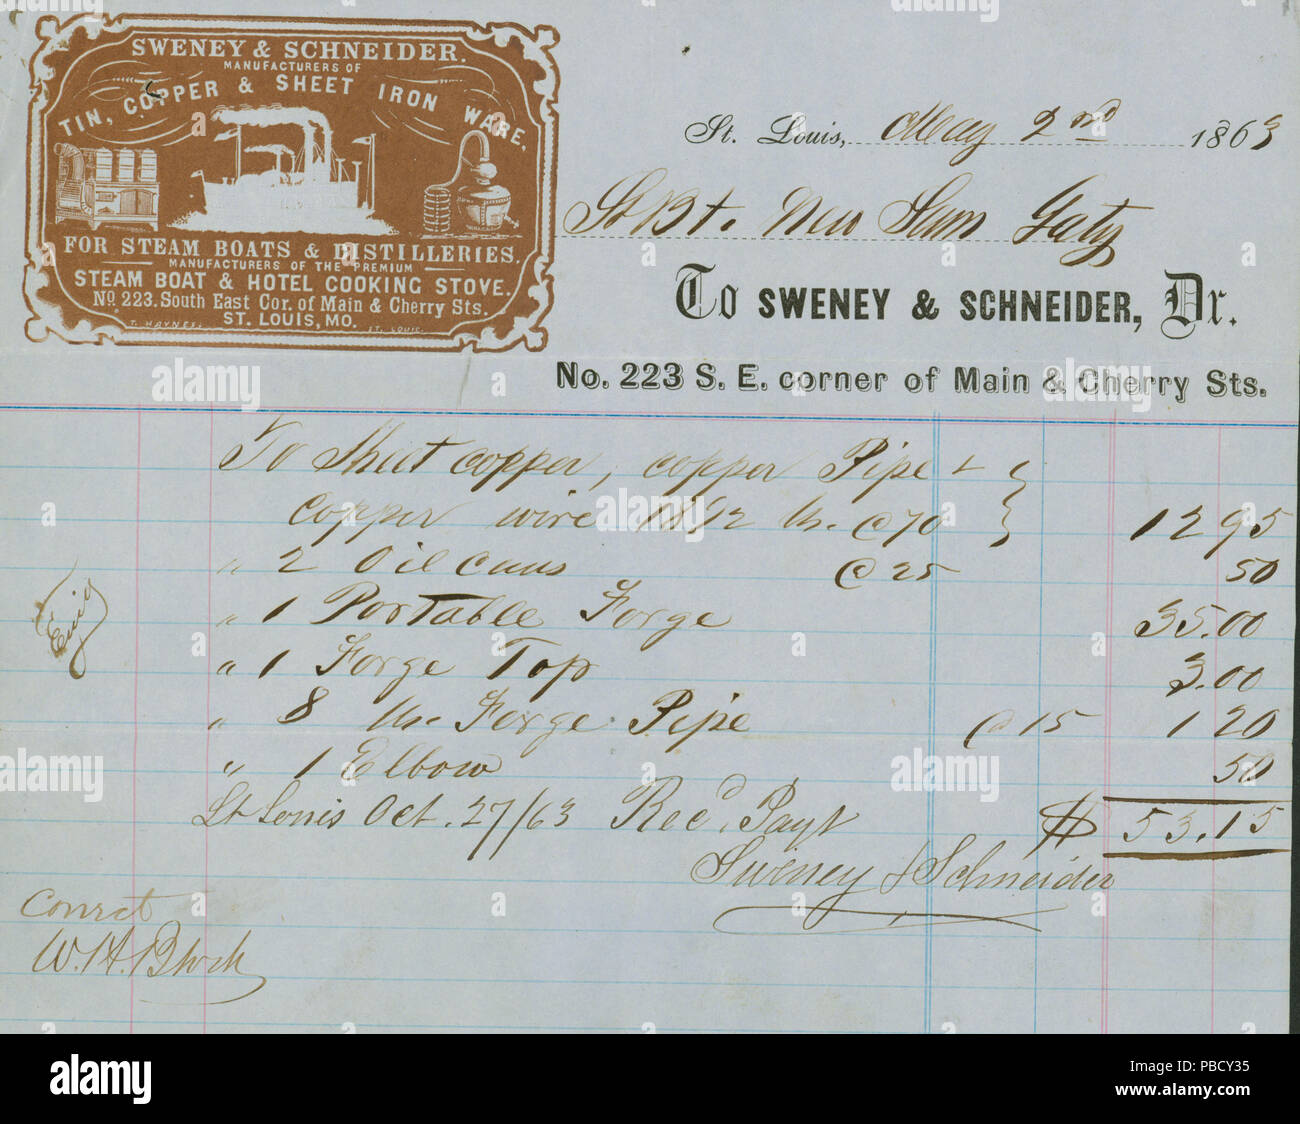 1248 receipt of payment of steamboat new sam gaty to sweney and